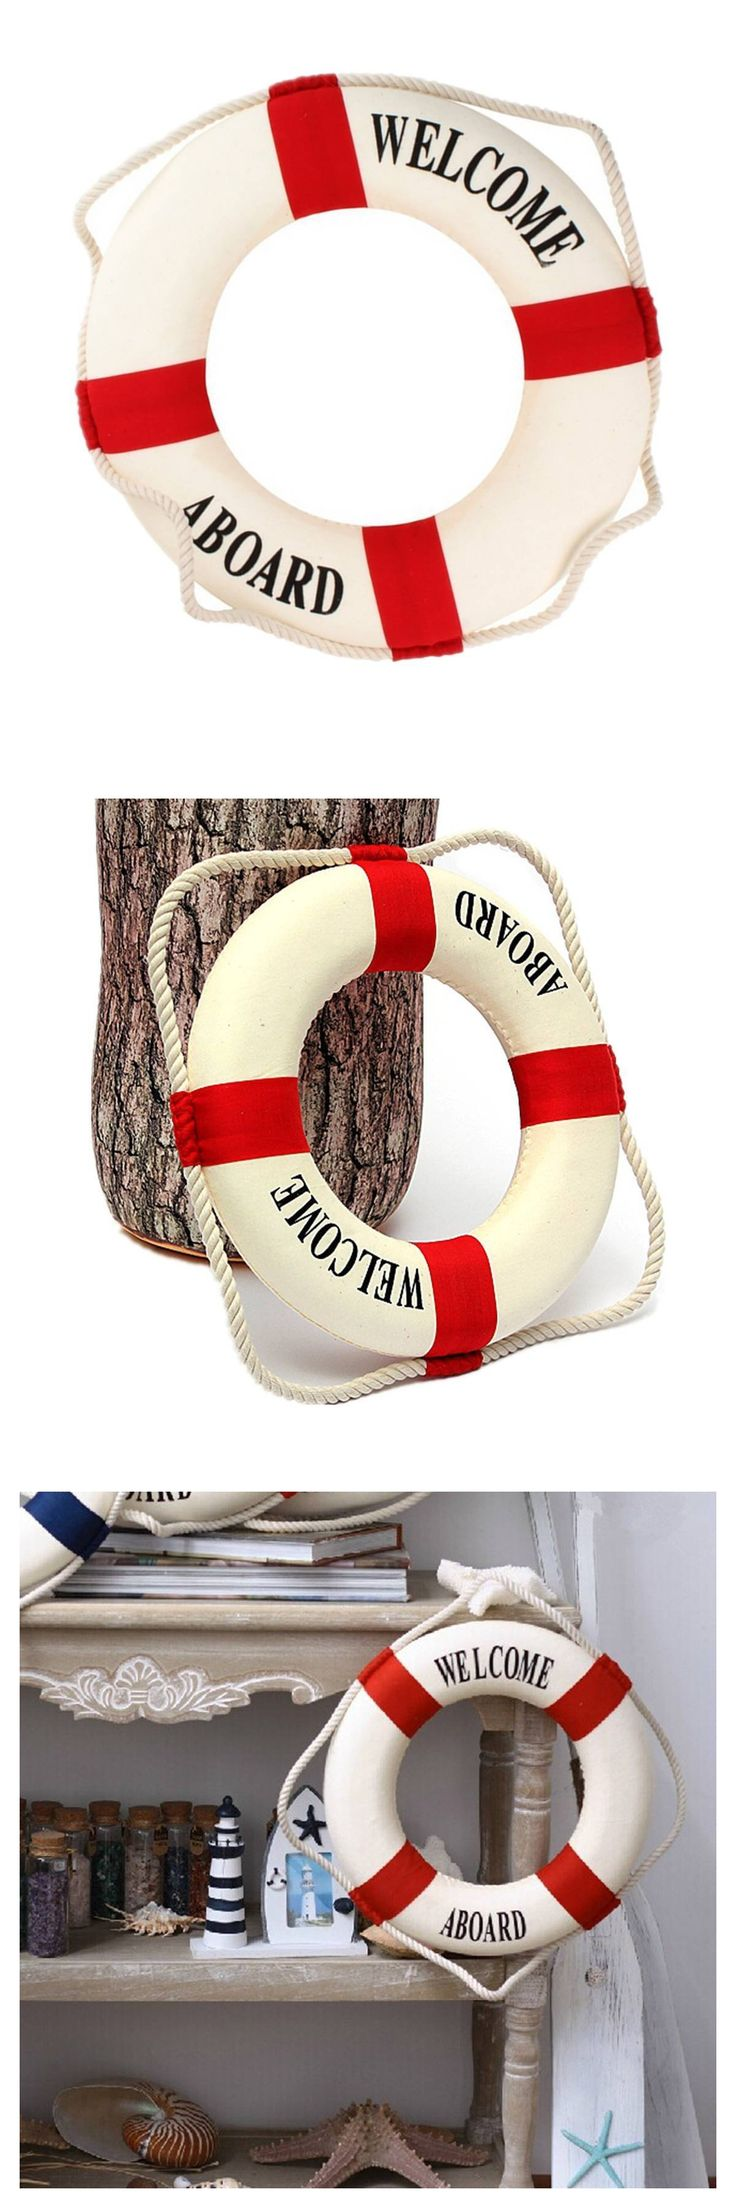 Welcome aboard boat ships life ring clock - Welcome Aboard Foam Nautical Life Lifebuoy Ring Boat Wall Hanging Home Decoration Red 50cm